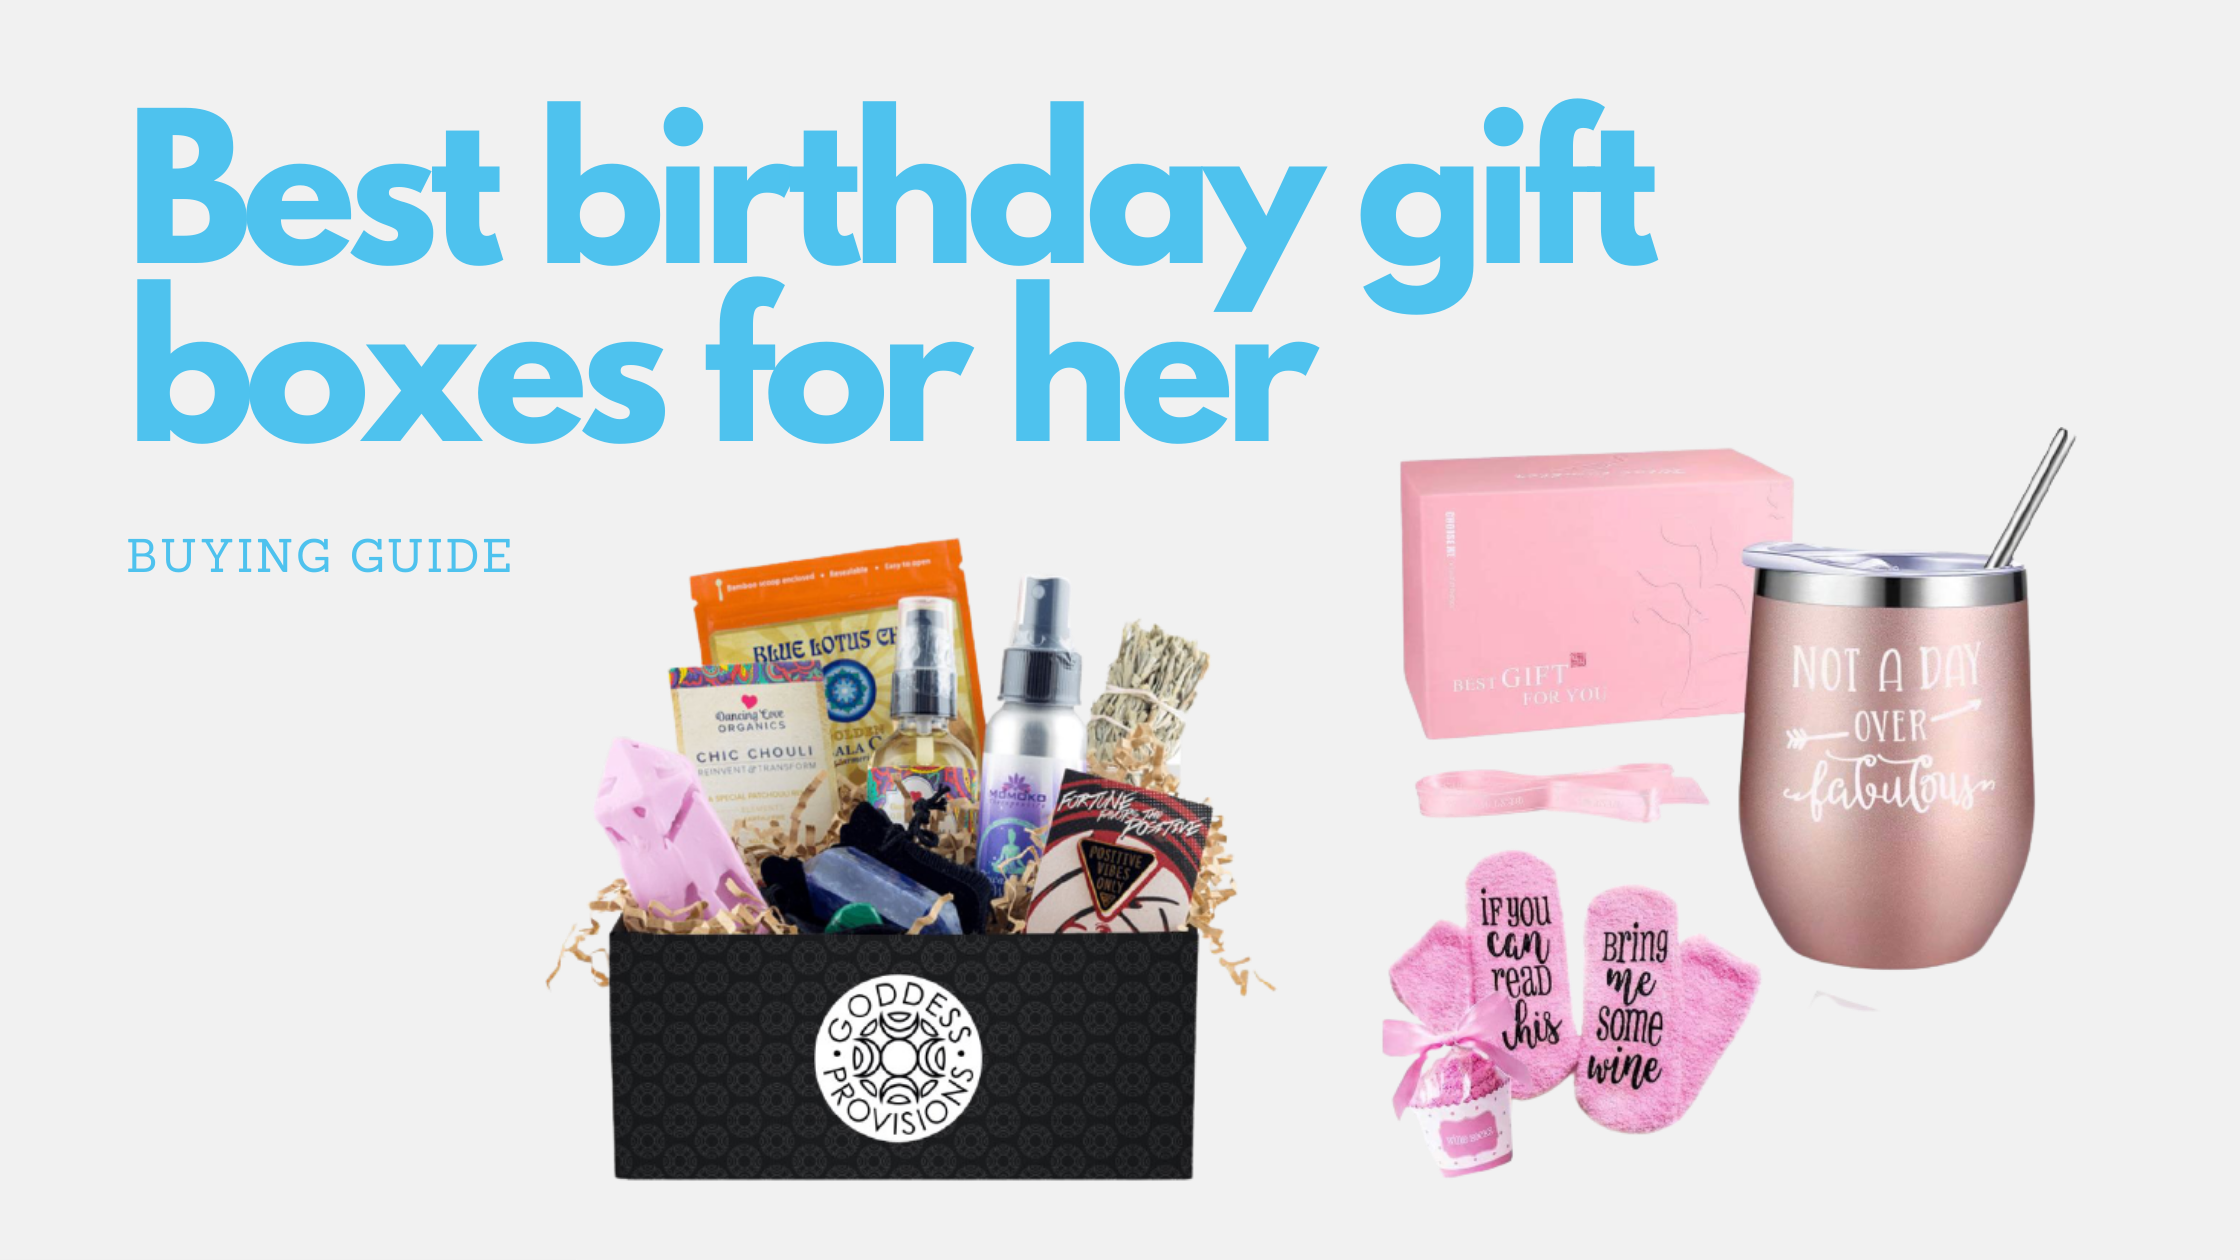 10 Best birthday gift boxes for her